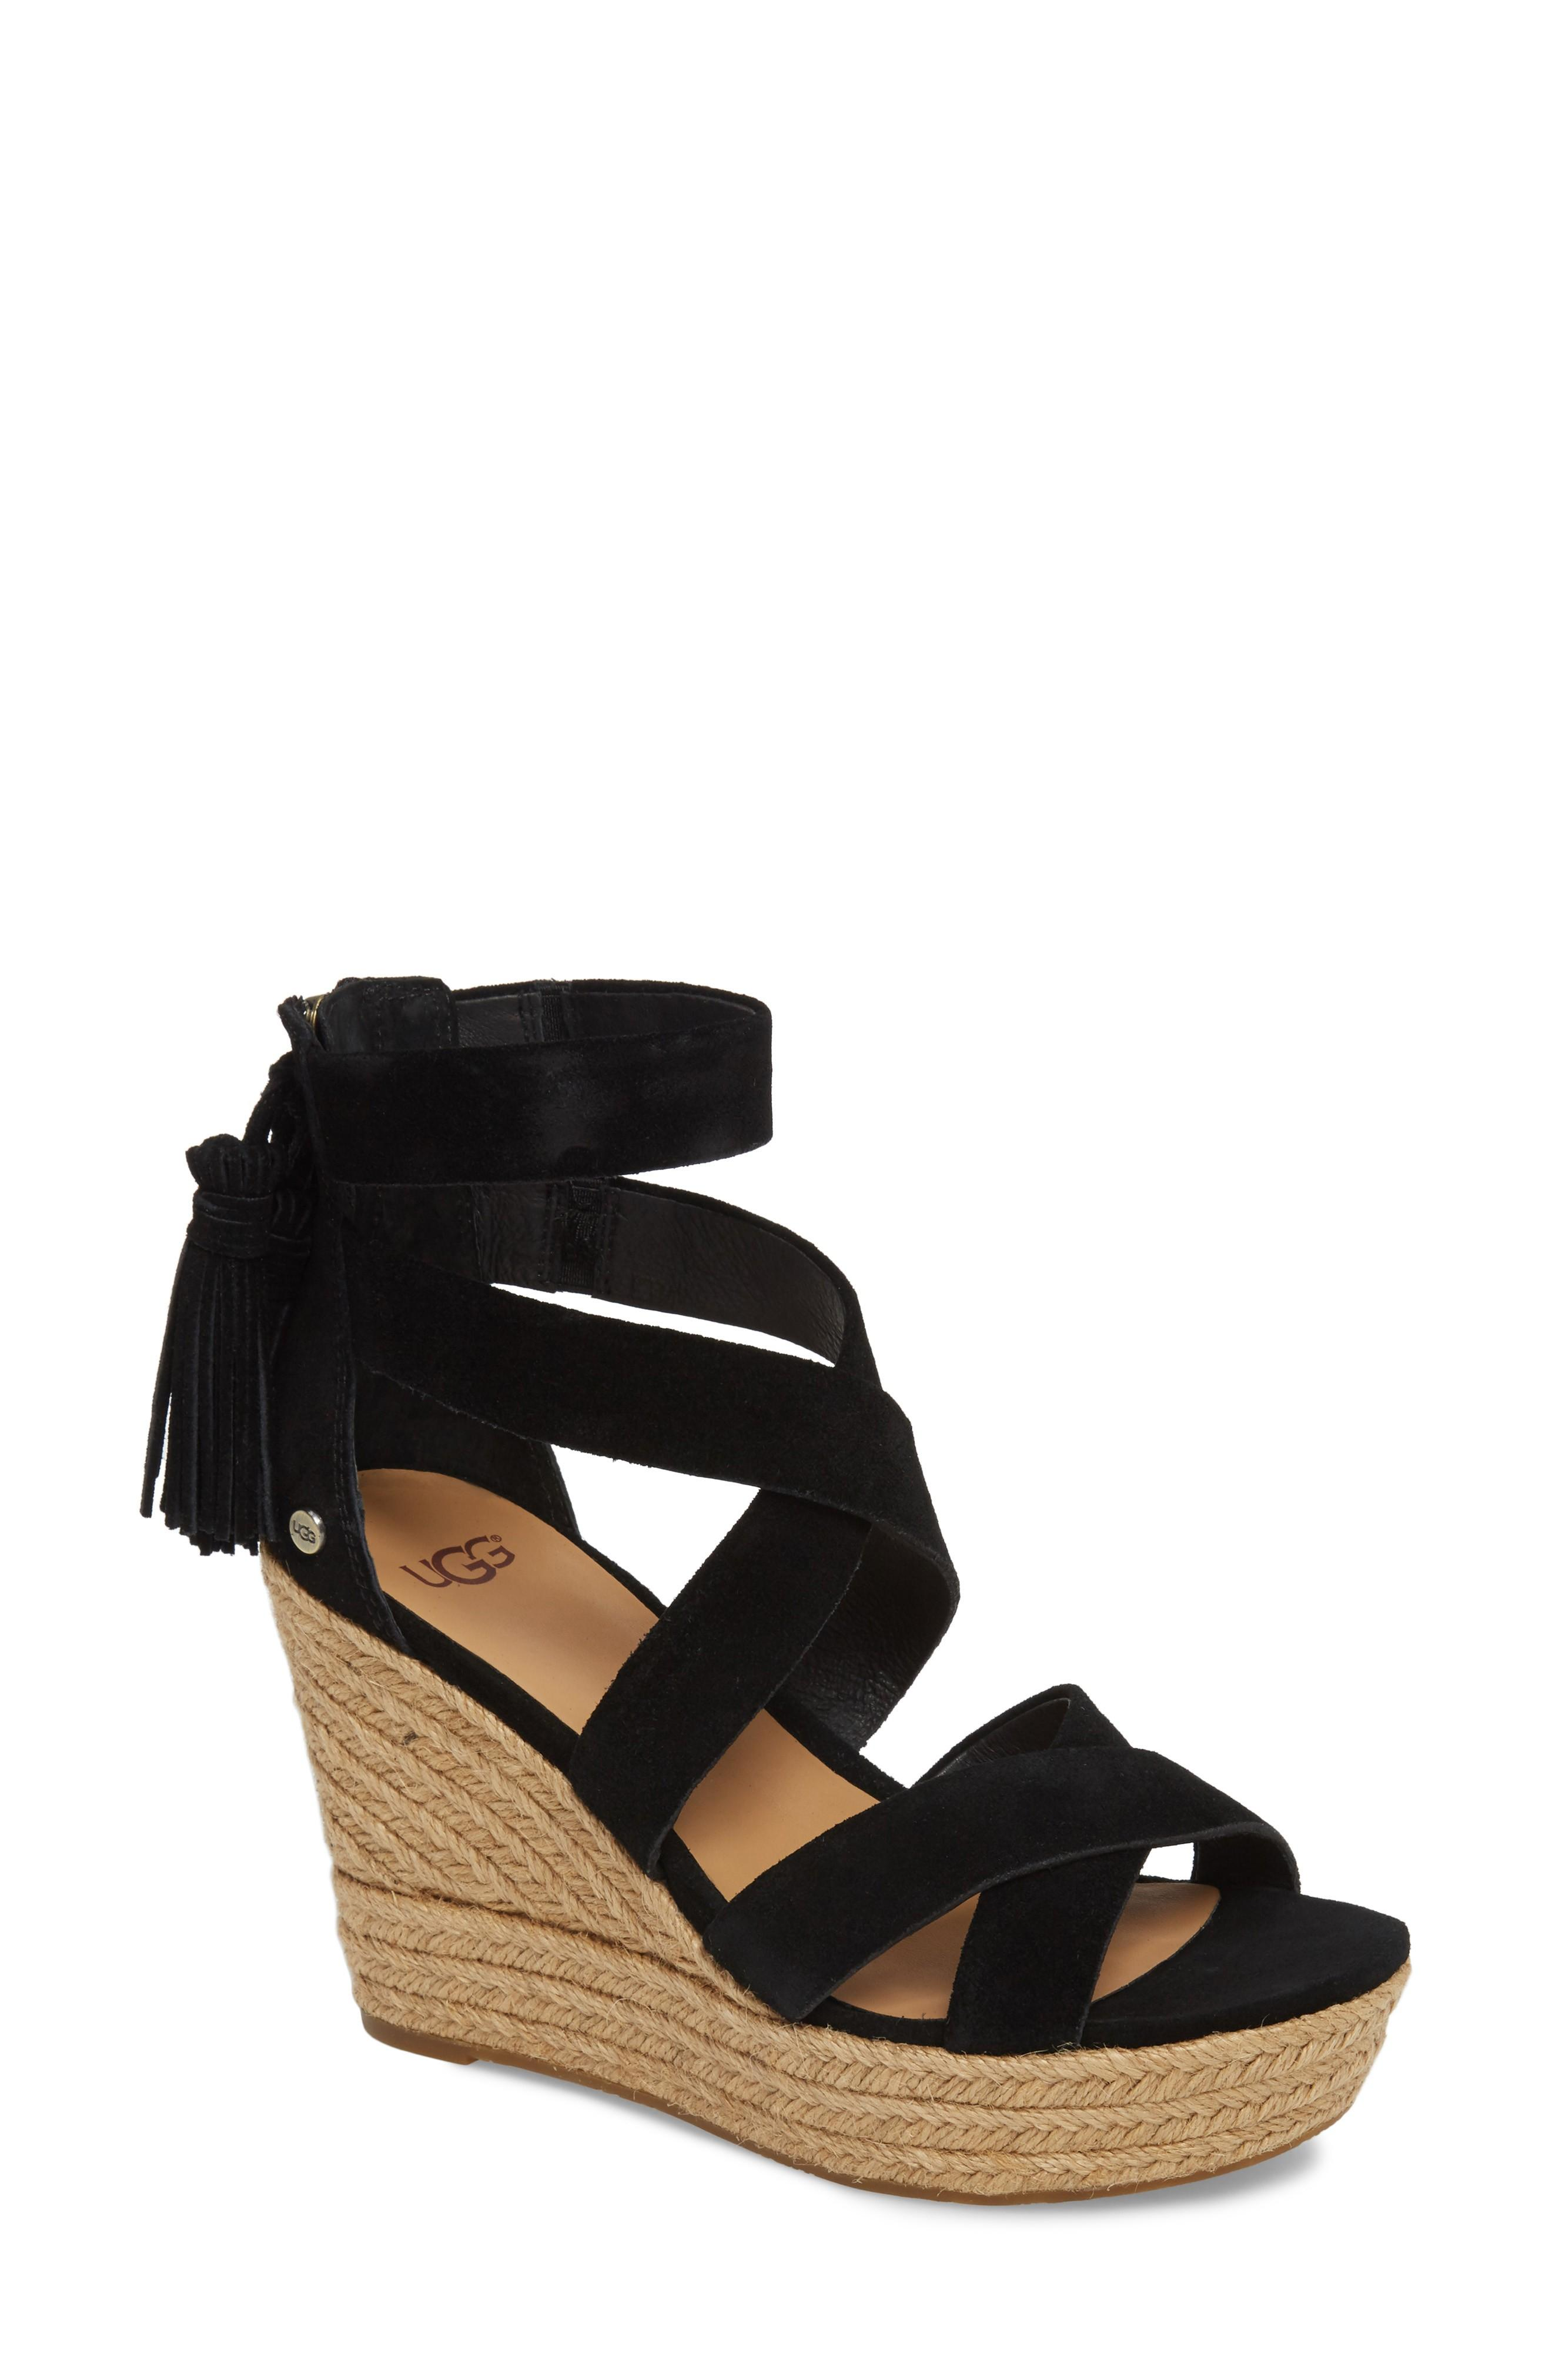 06ba1681e01 A trio of tassels swing and sway with your every step in this strappy sandal  lofted skyward by a towering wedge heel and platform. Style Name  Ugg  Raquel ...